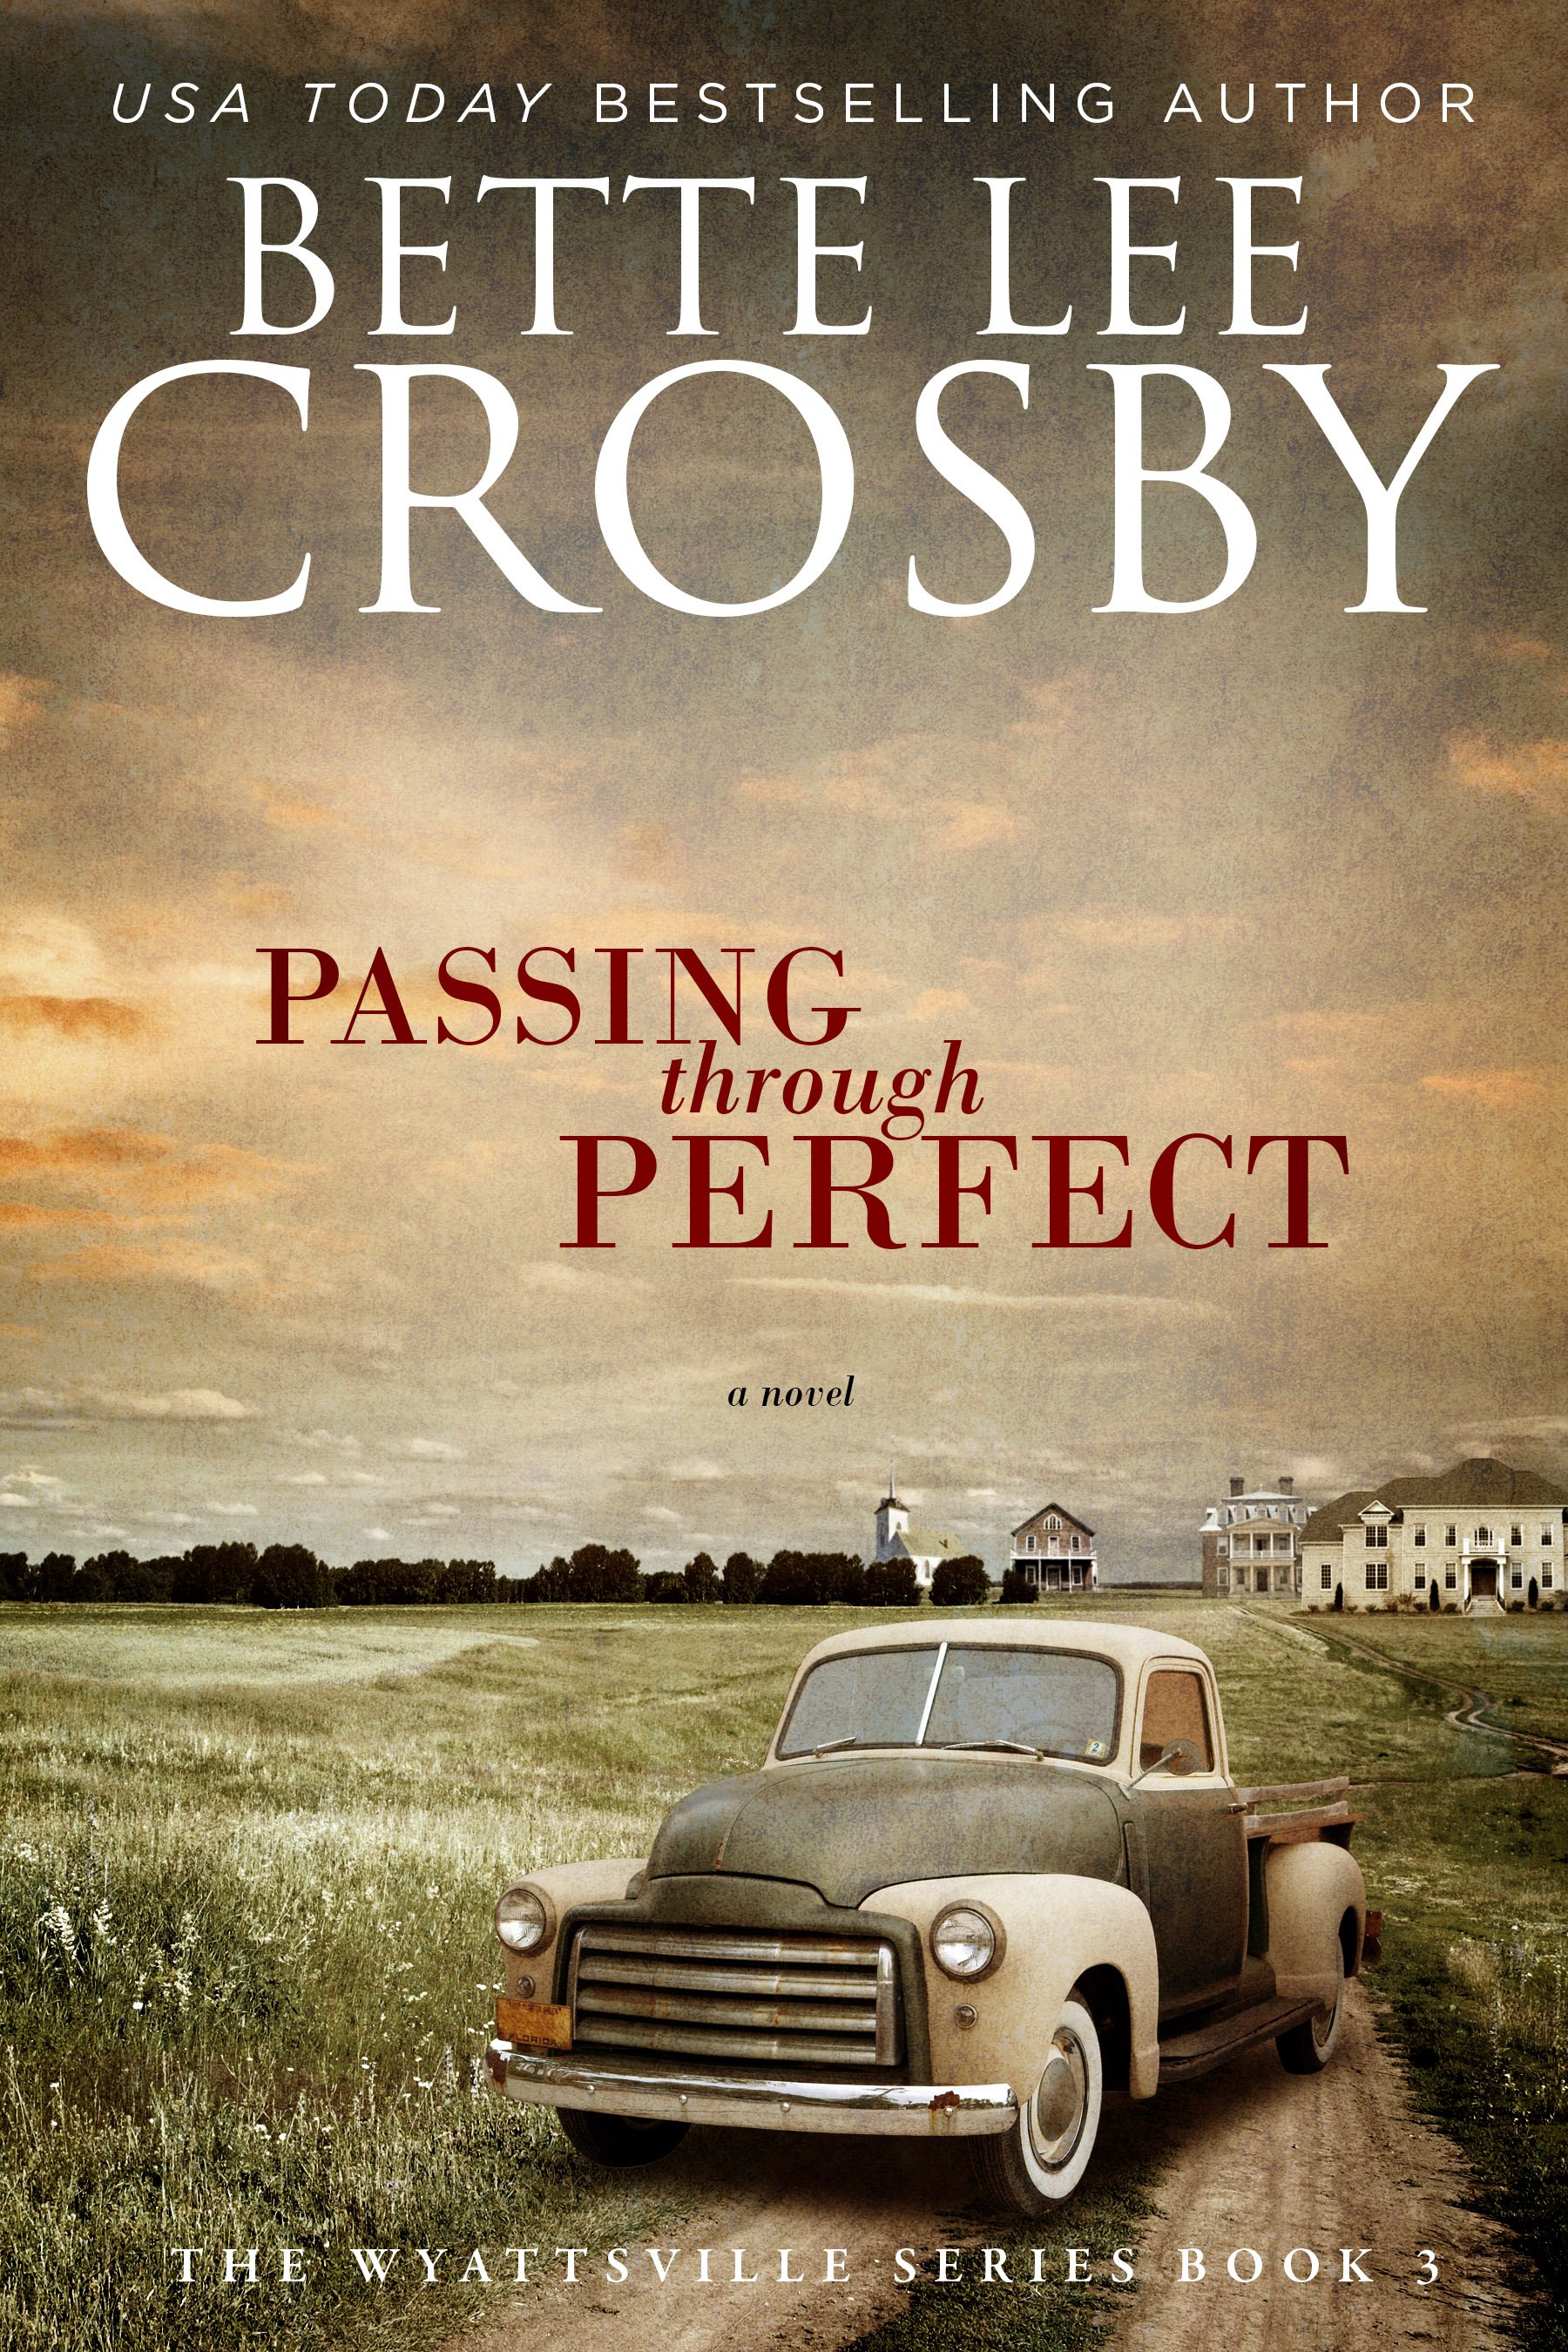 Passing through Perfect is a Reader's Favorite